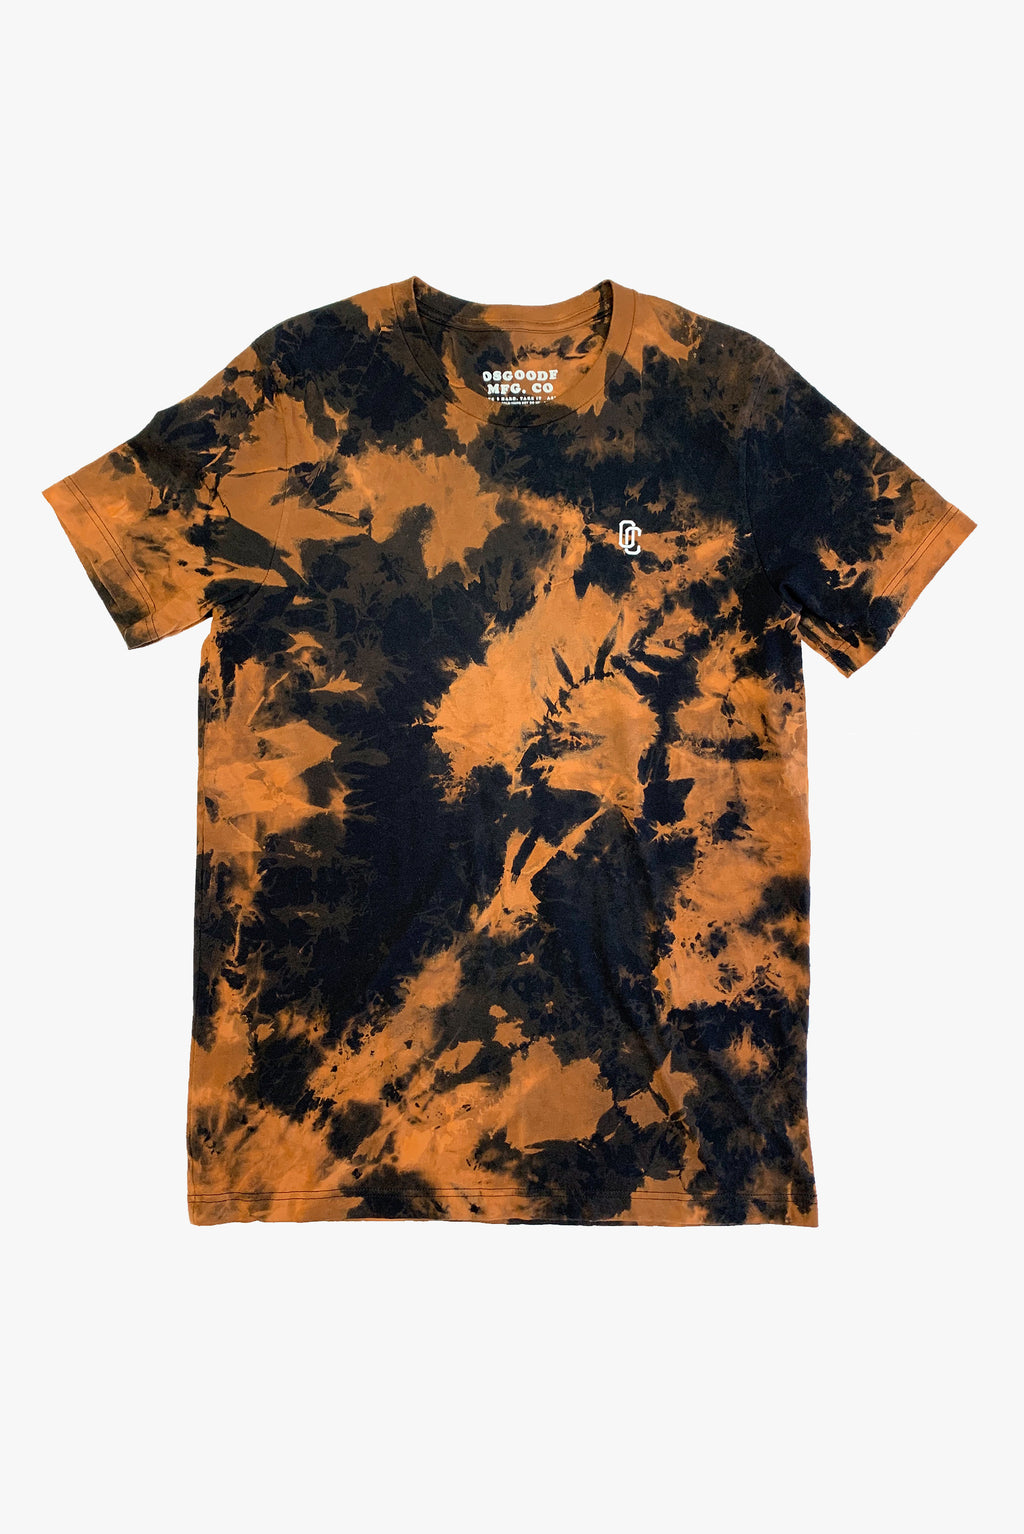 SUMMER HAZE T-SHIRT BLACK